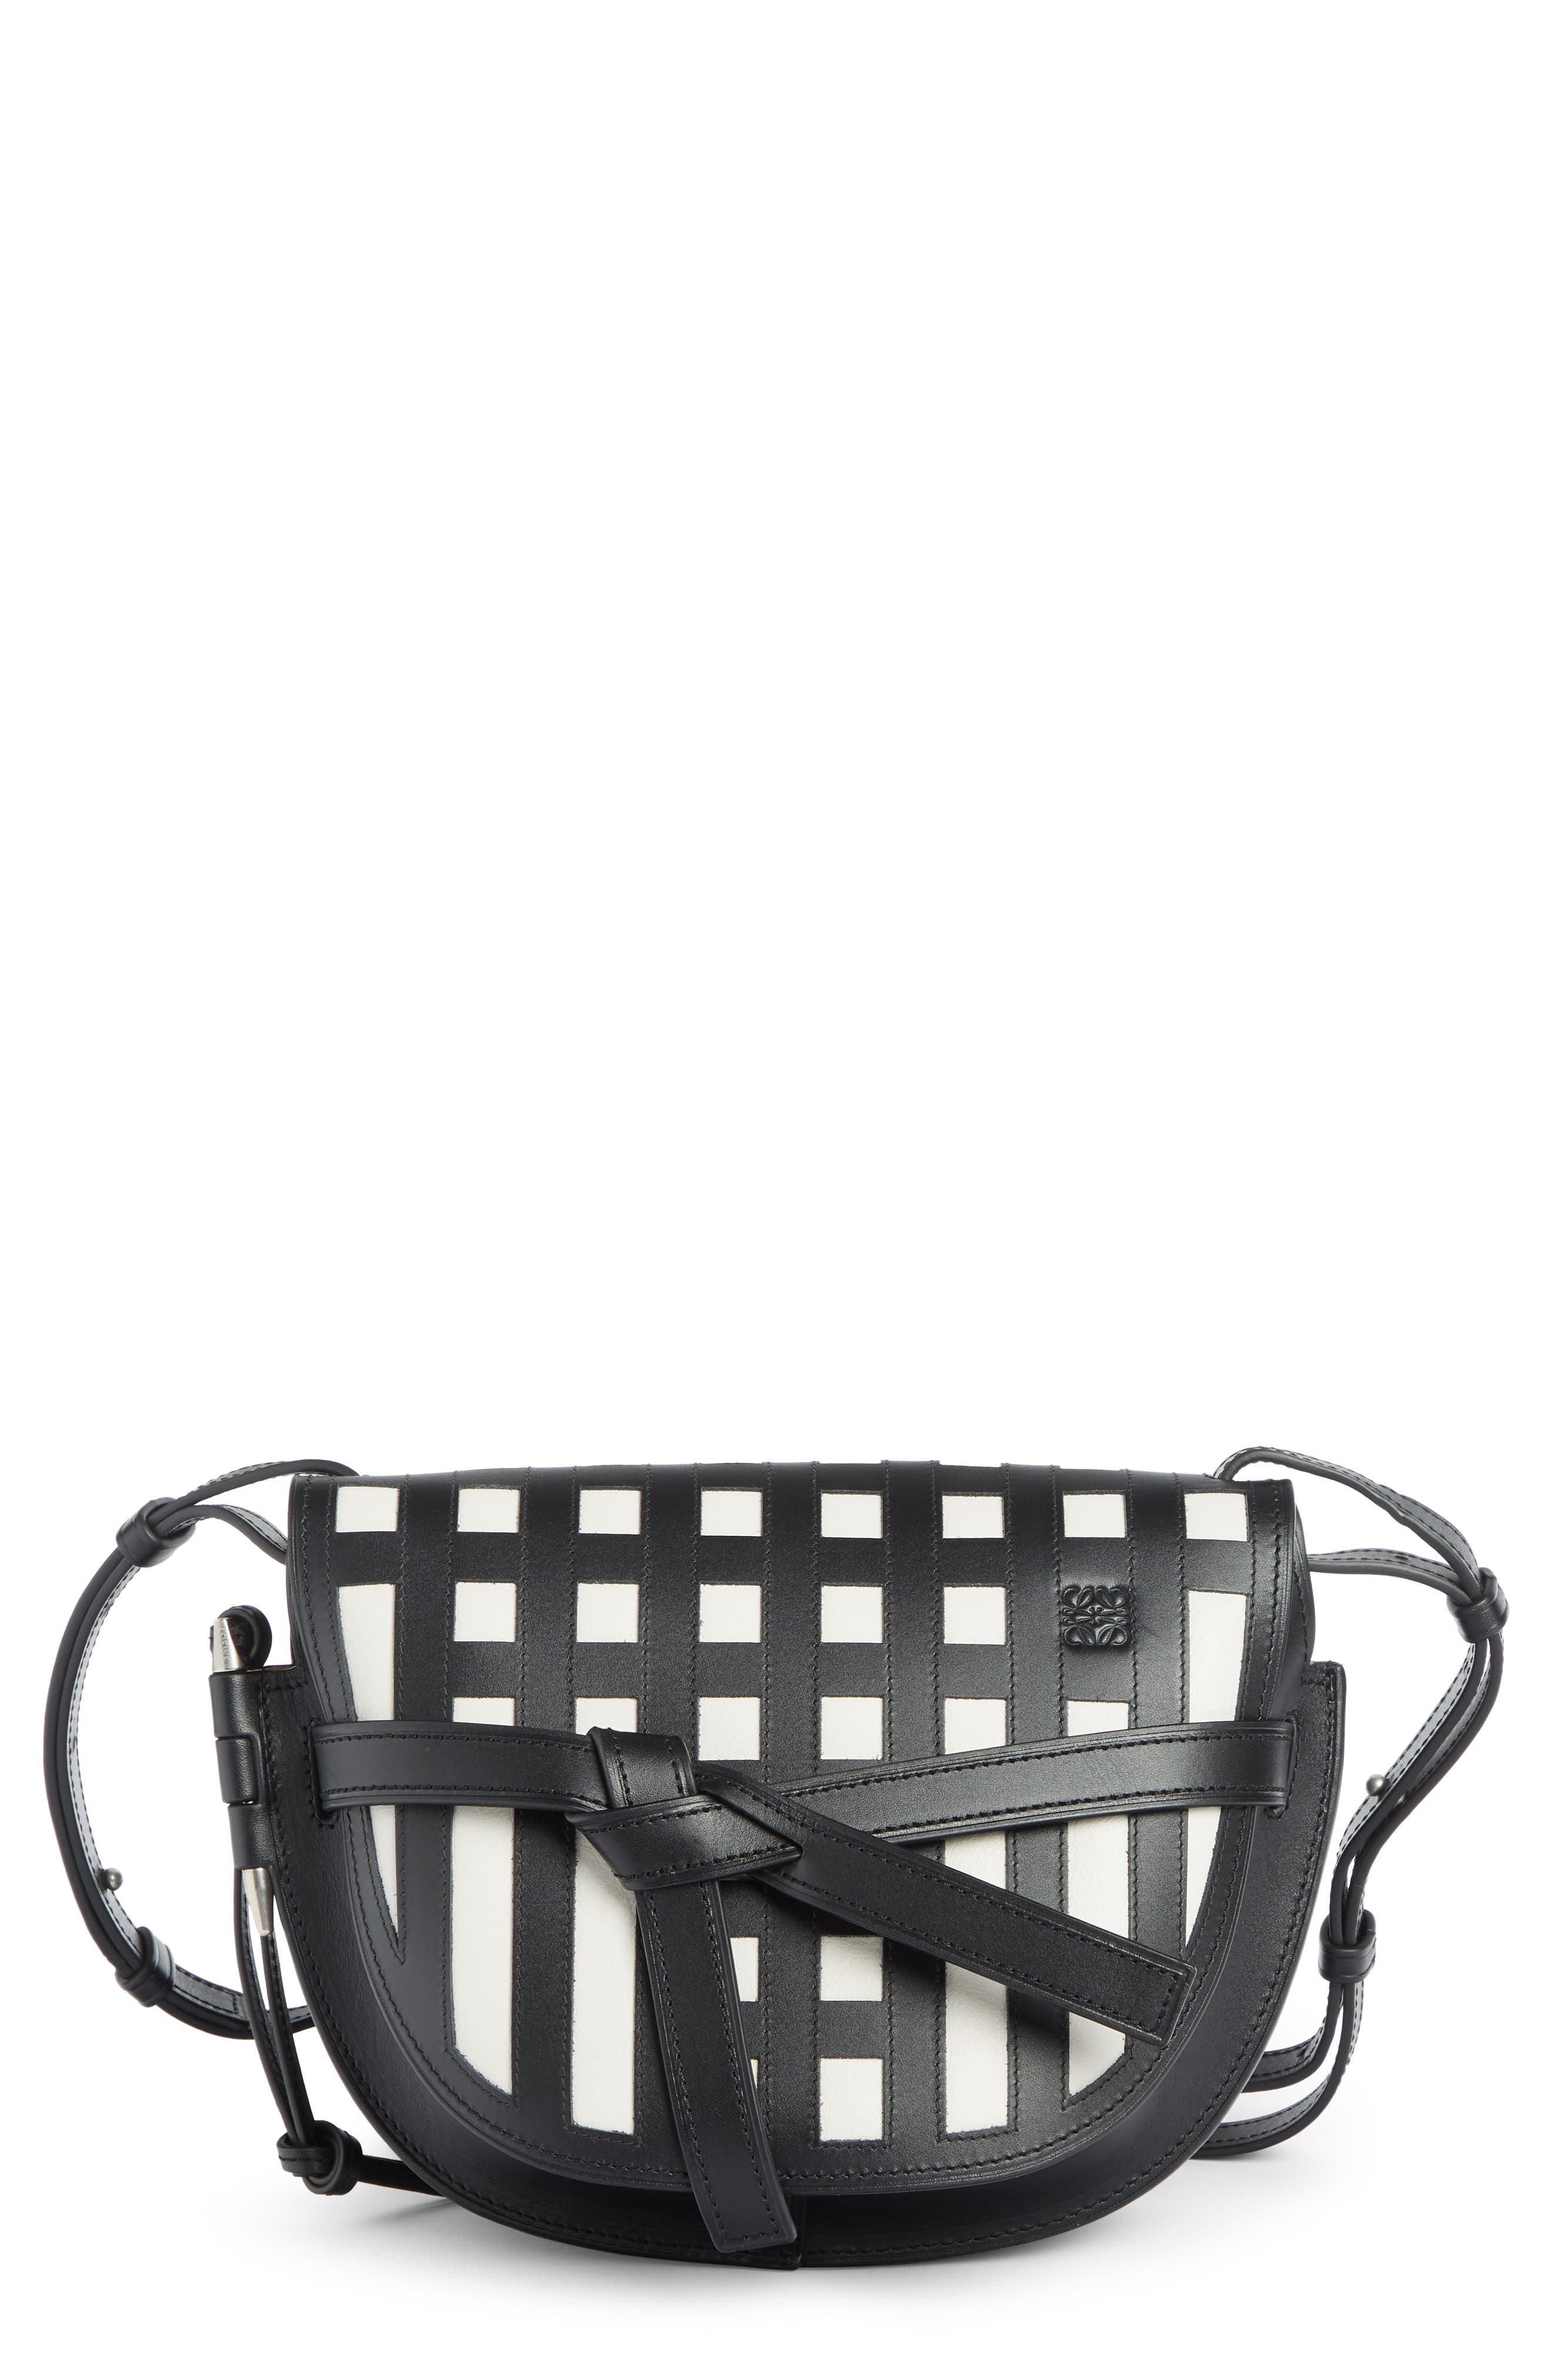 Small Gate Grid Leather Crossbody Bag,                             Main thumbnail 1, color,                             BLACK/ WHITE